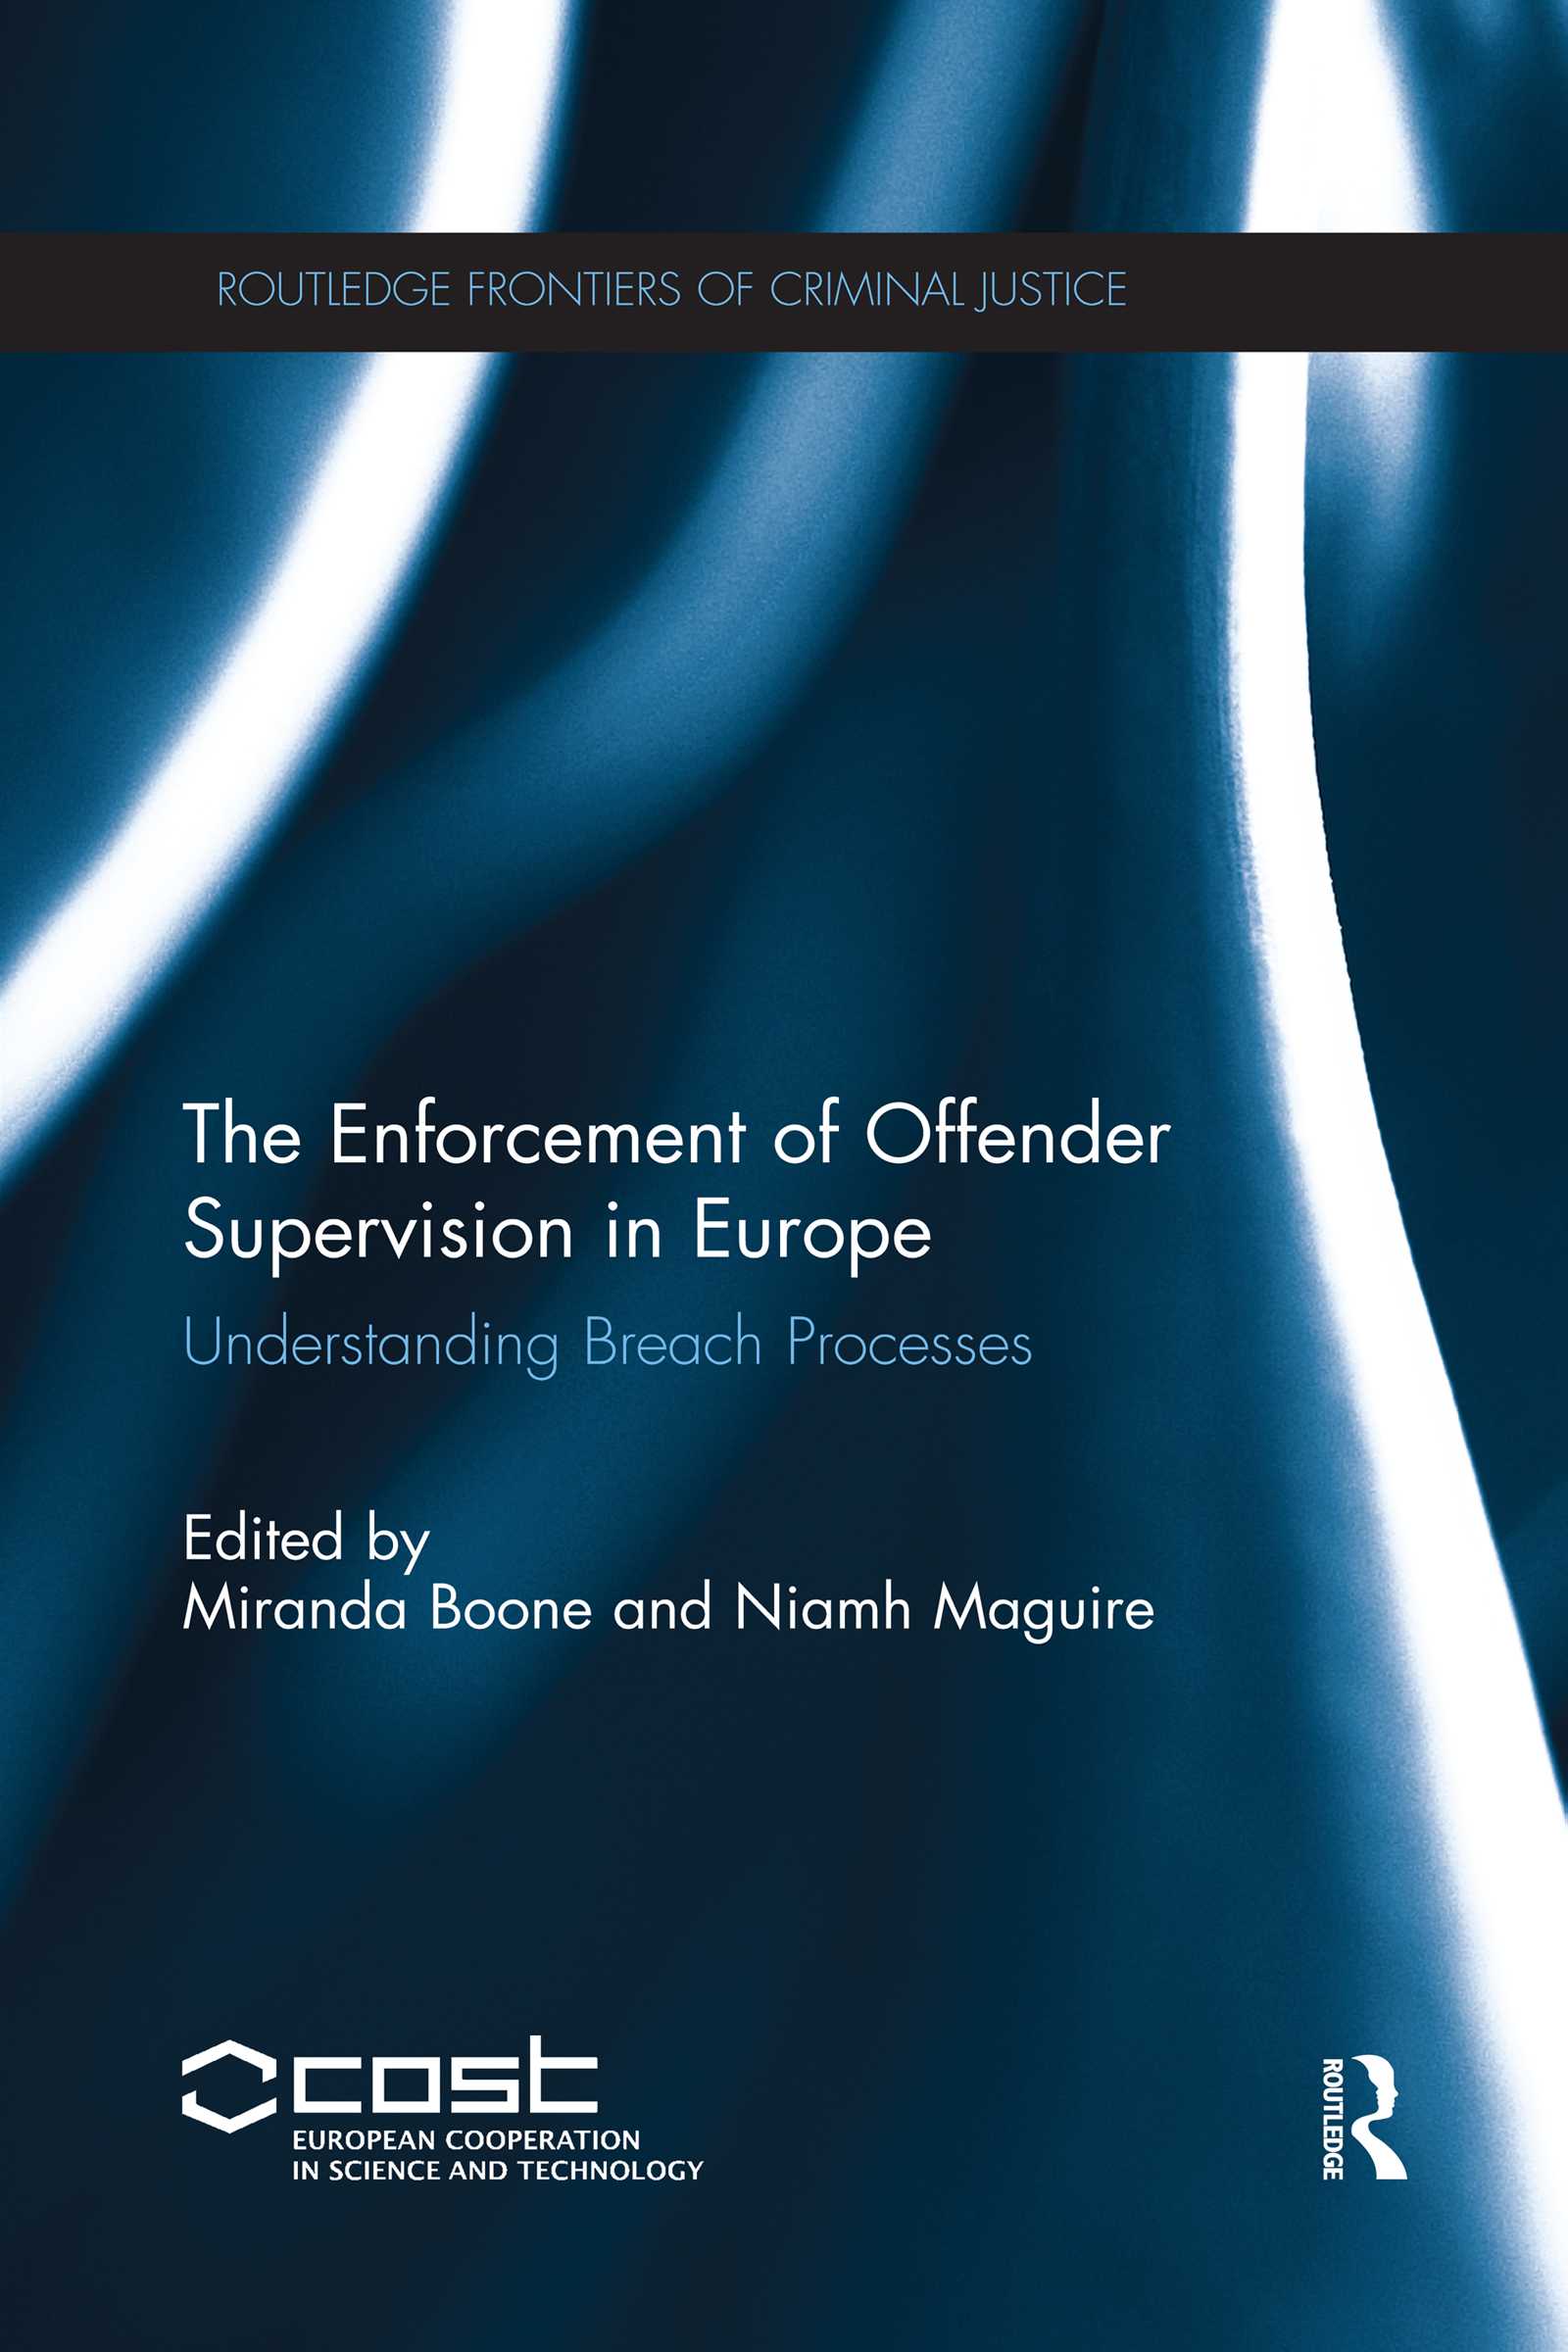 The Enforcement of Offender Supervision in Europe